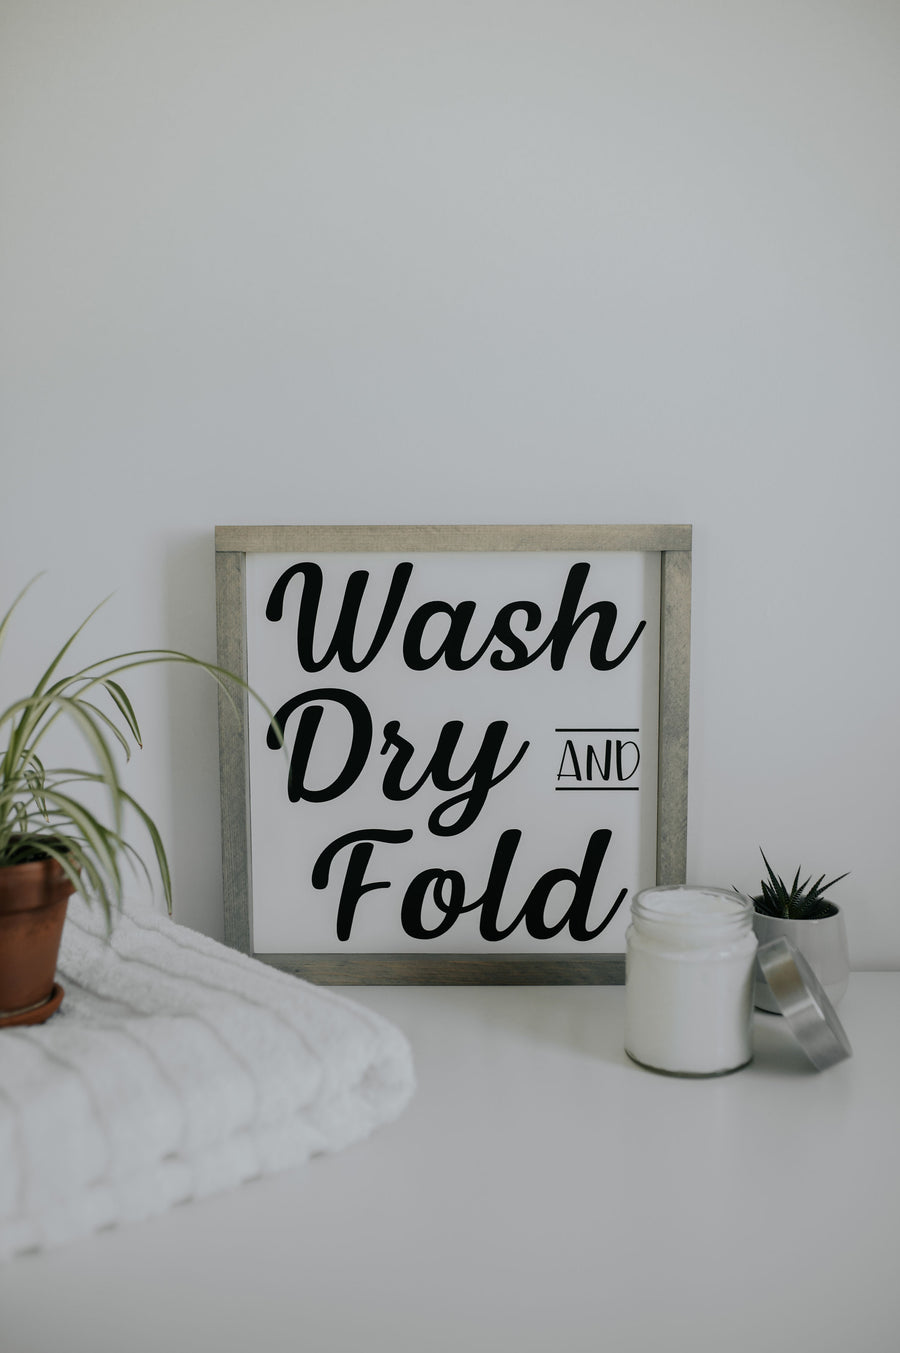 Wash, Dry, and Fold